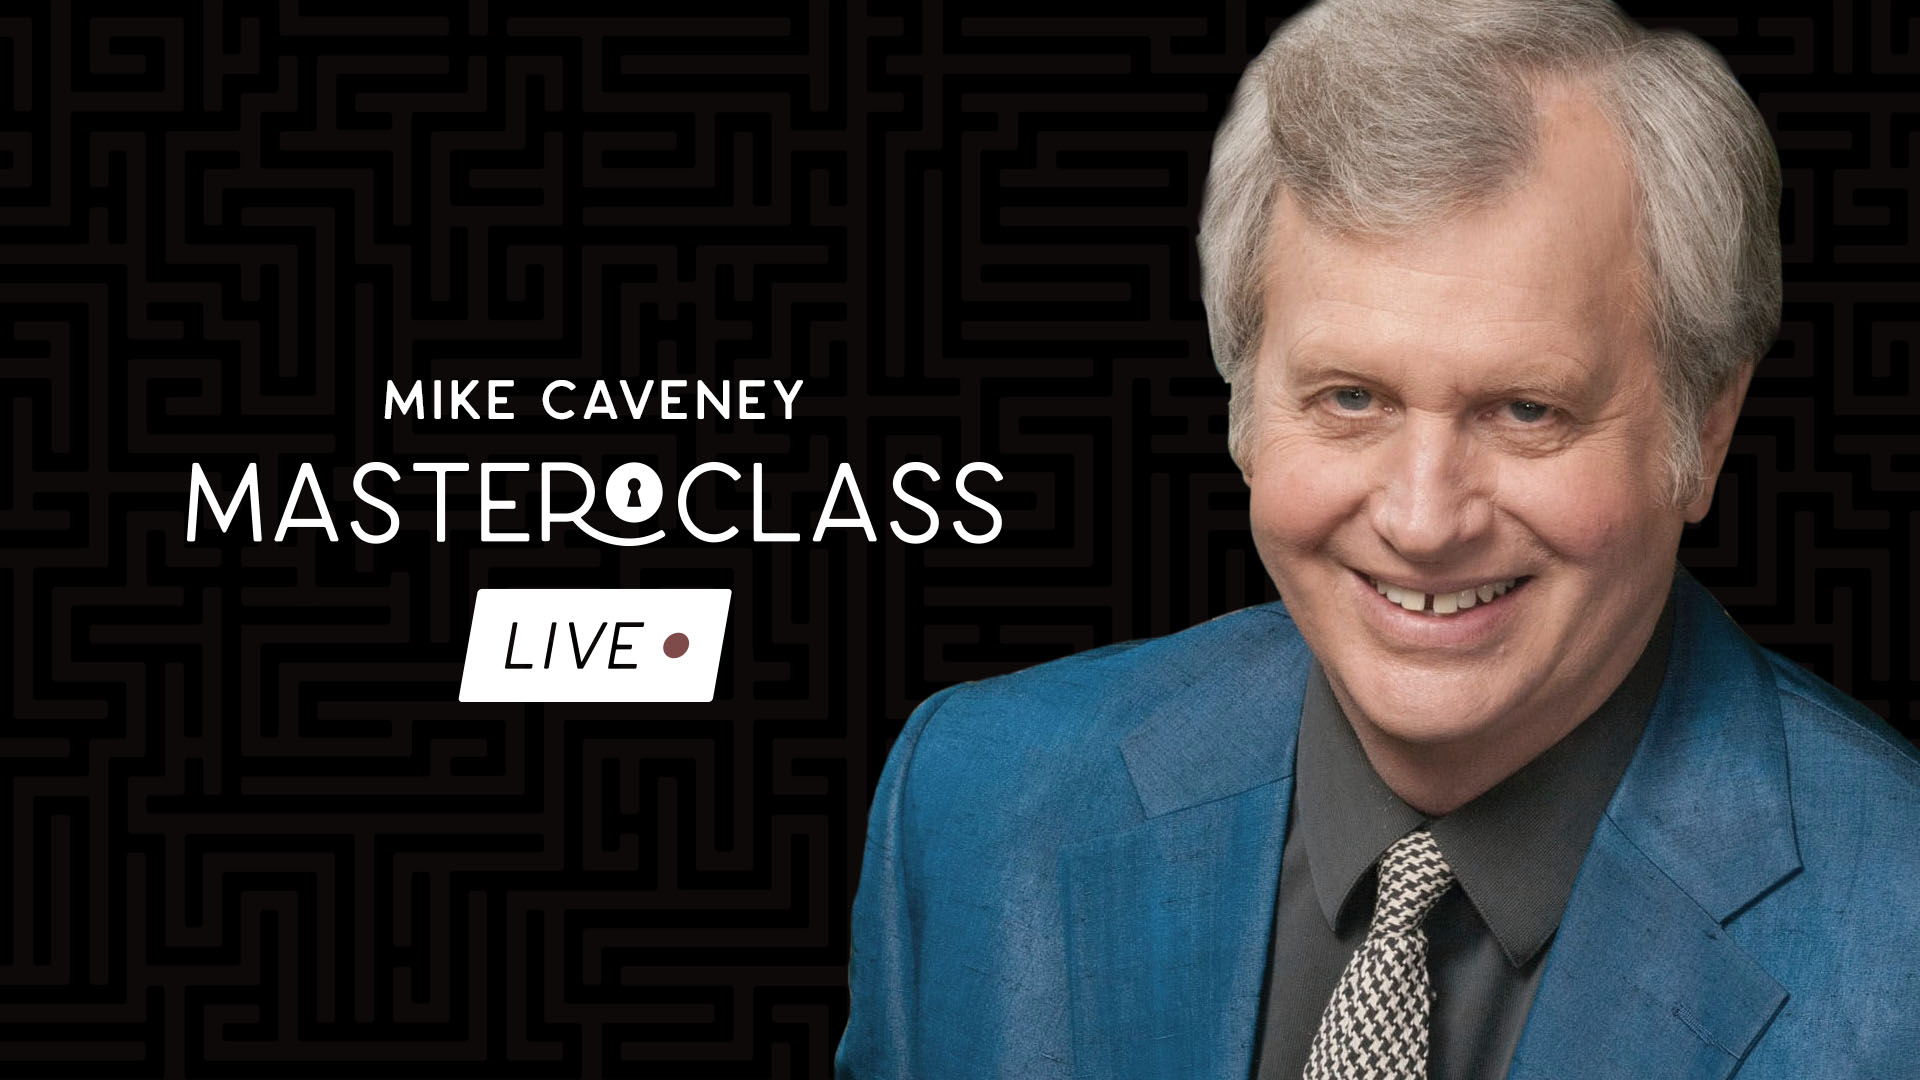 Mike Caveney: Masterclass: Live - Vanishing Inc. Magic shop